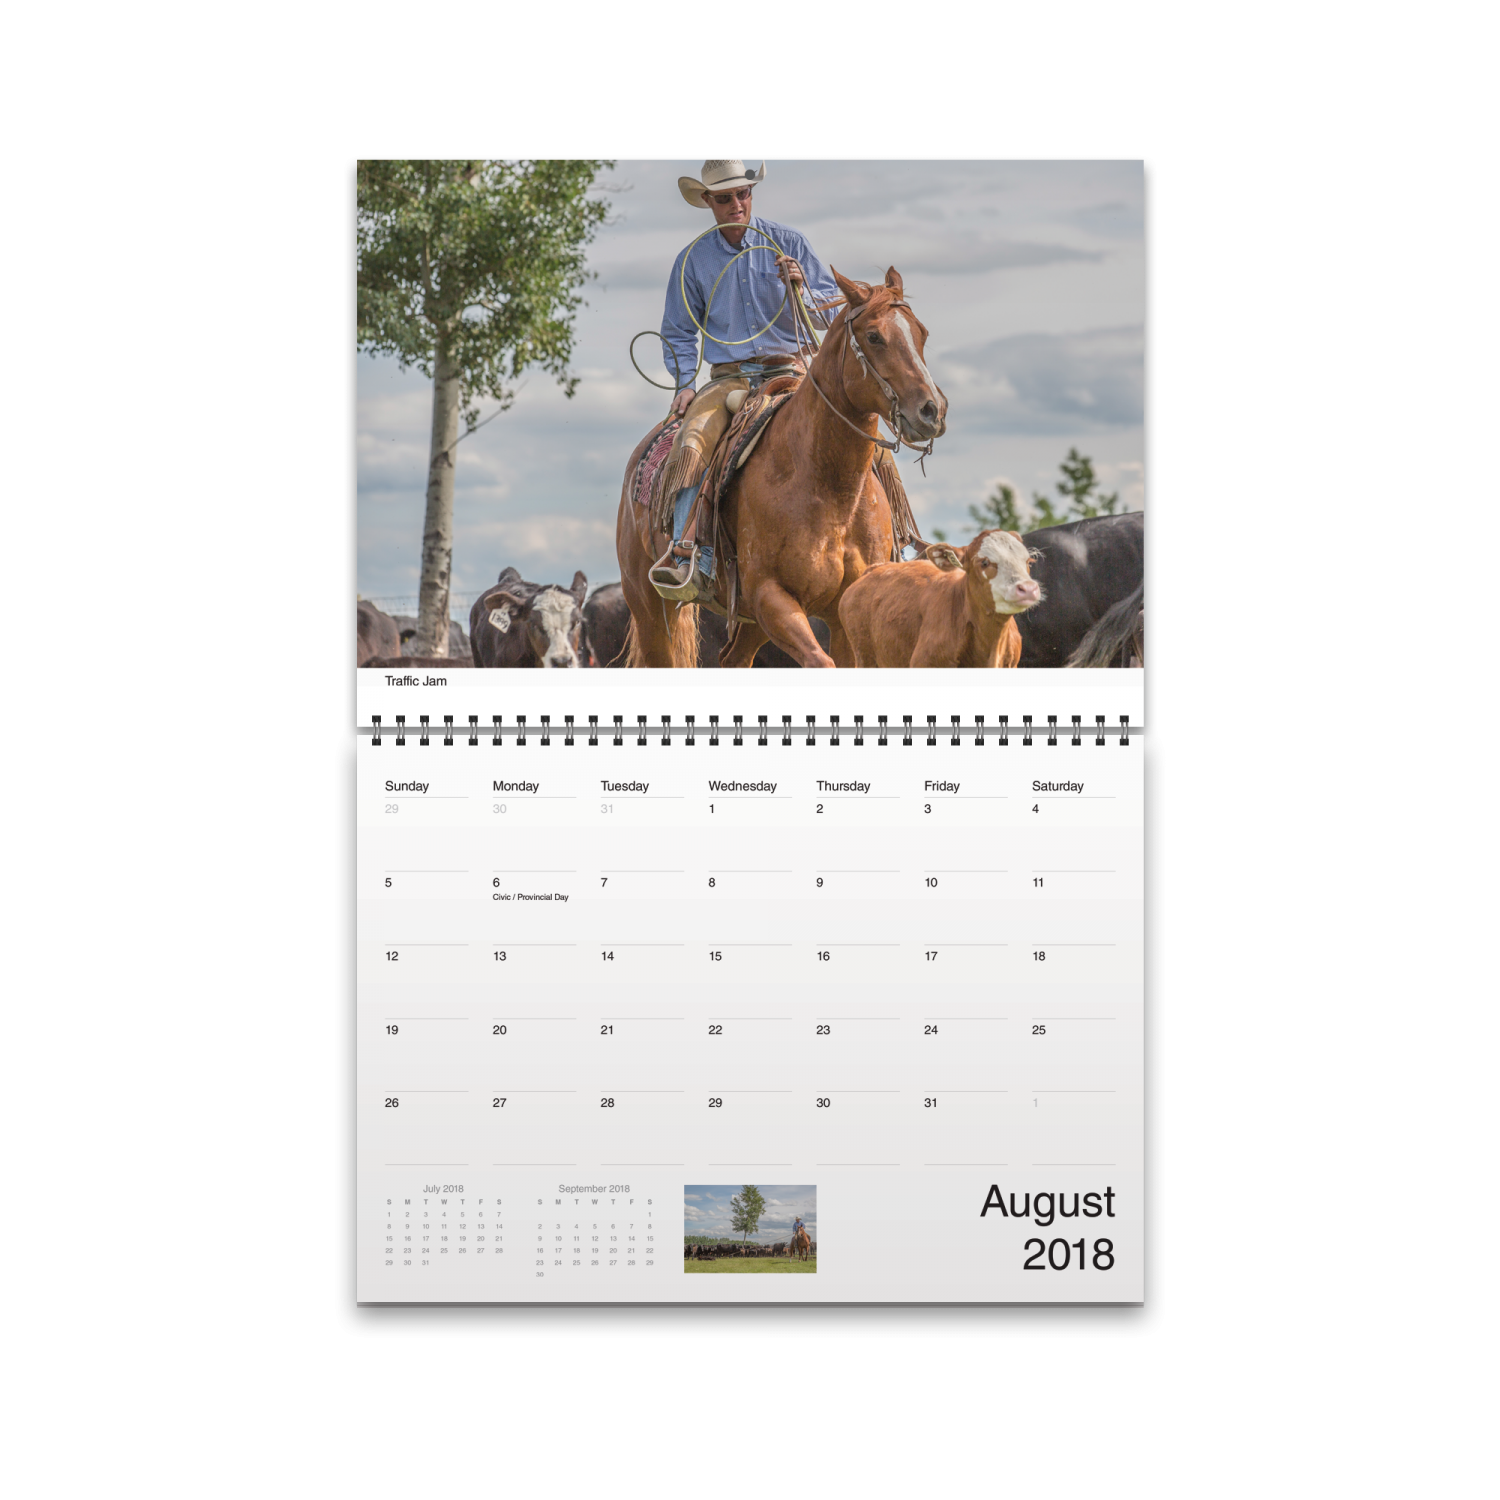 2018 Calendar View showing October